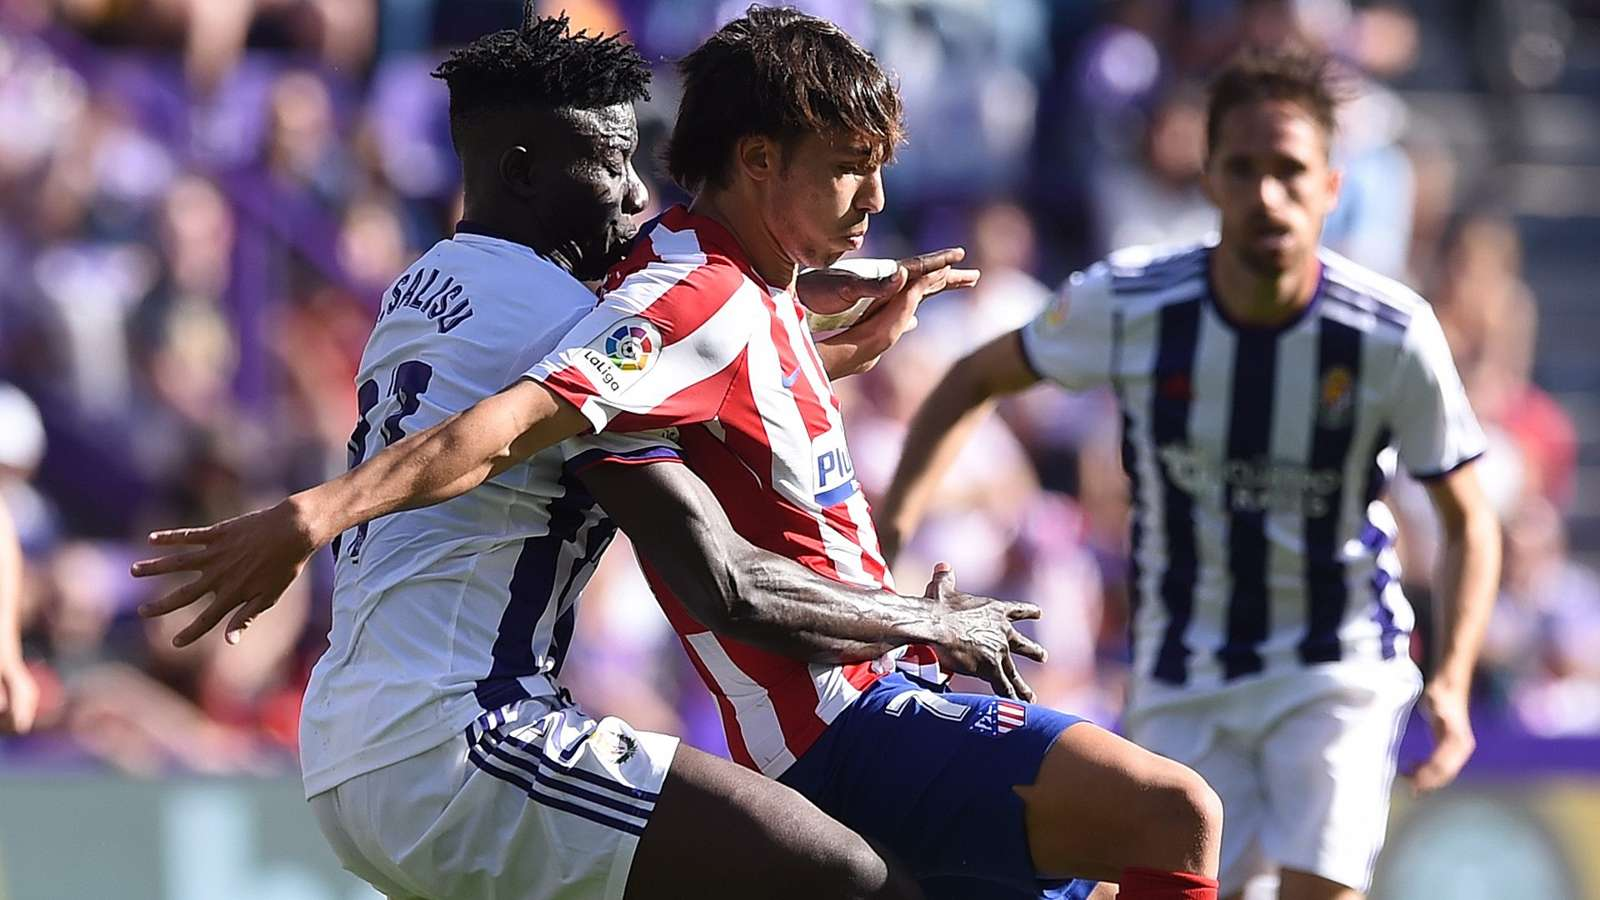 Ghanaian youngster Mohammed Salisu opens up on his good start at Real Valladolid